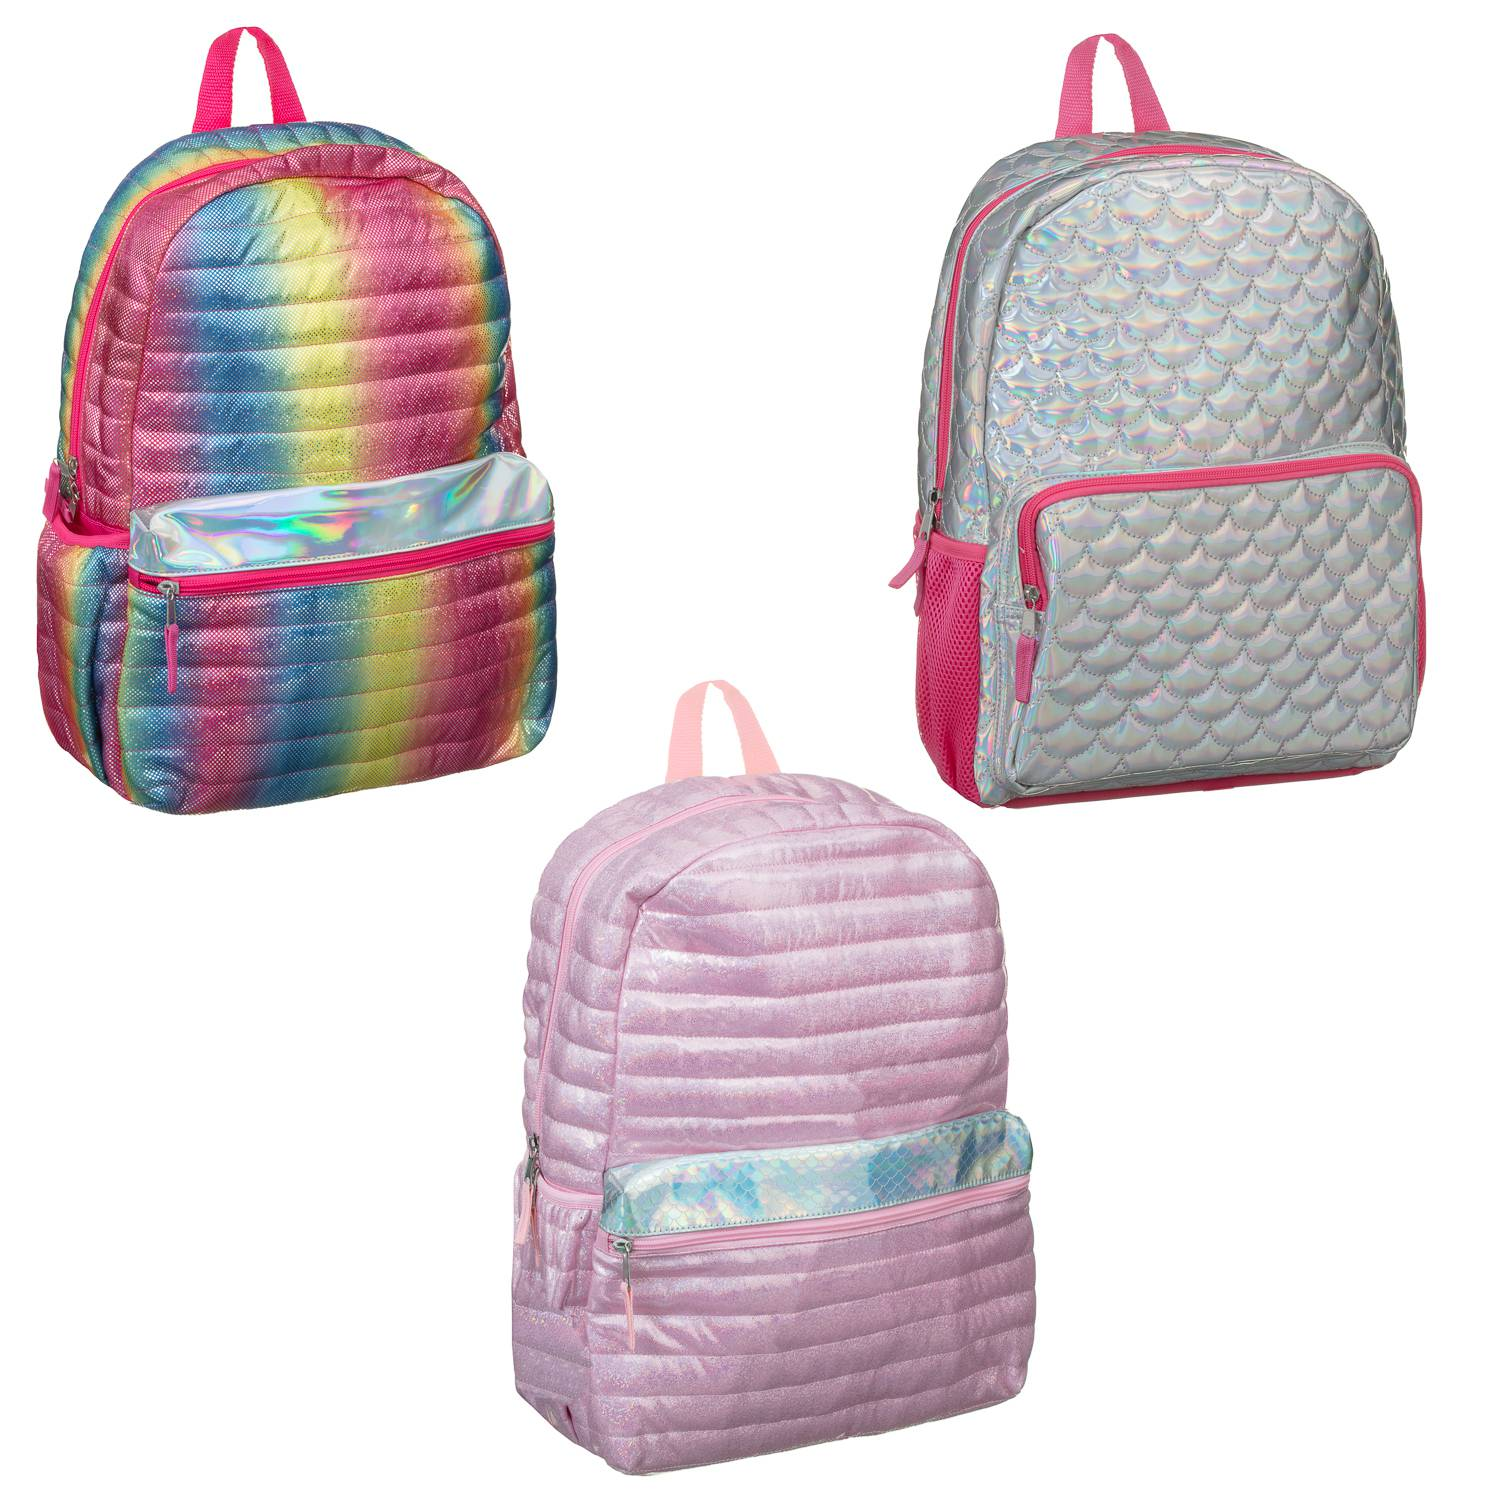 359080-quilted-shine-backpack-pink